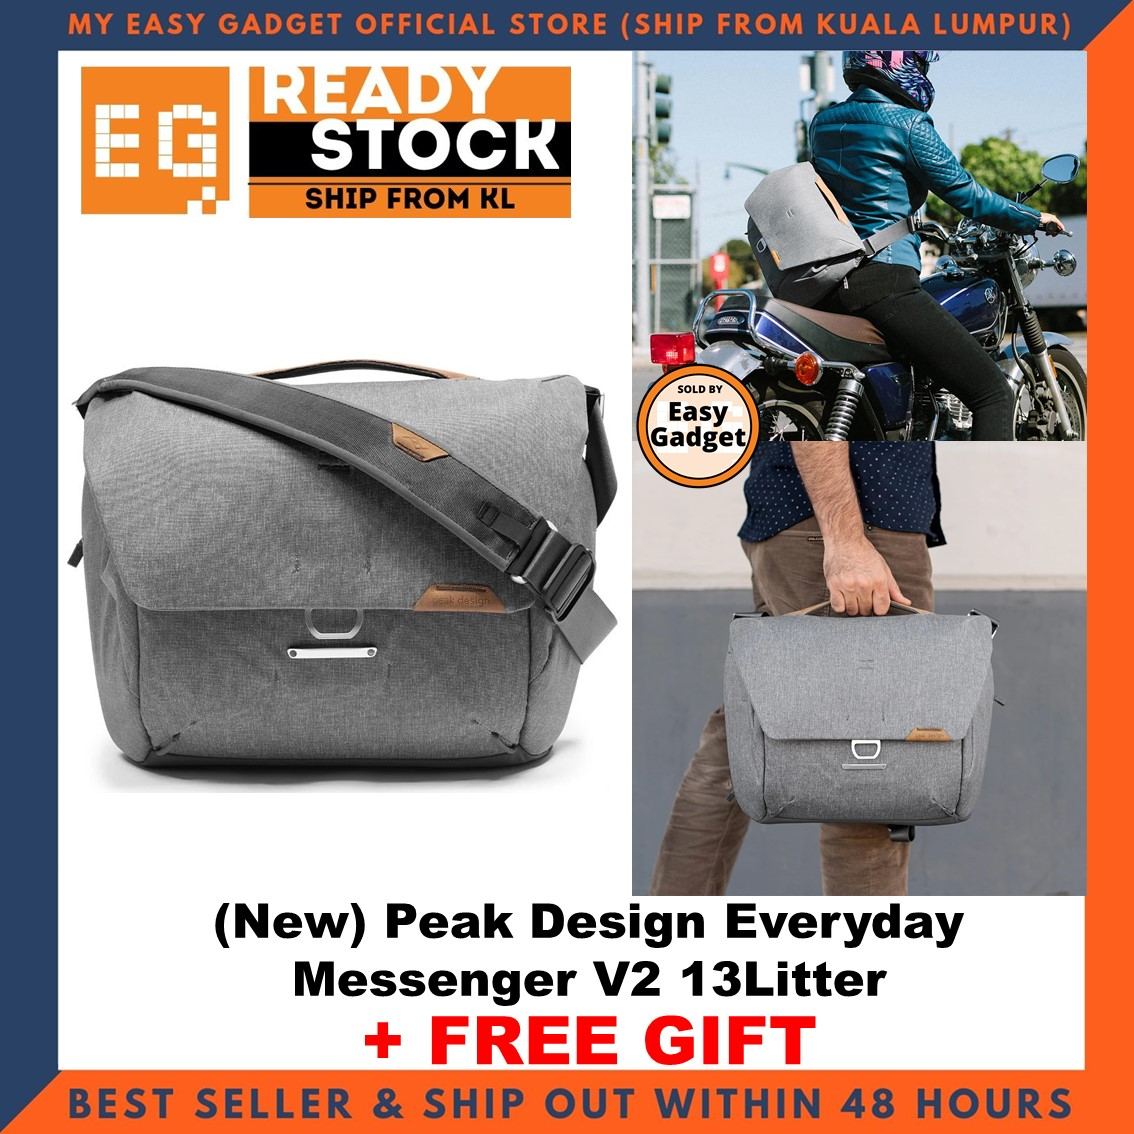 Peak Design Everyday Messenger 13L 13 Liter V2 Overhauled Shoulder Strap Design For Better Comfort + Adjustment, & Elimination Of Slippage